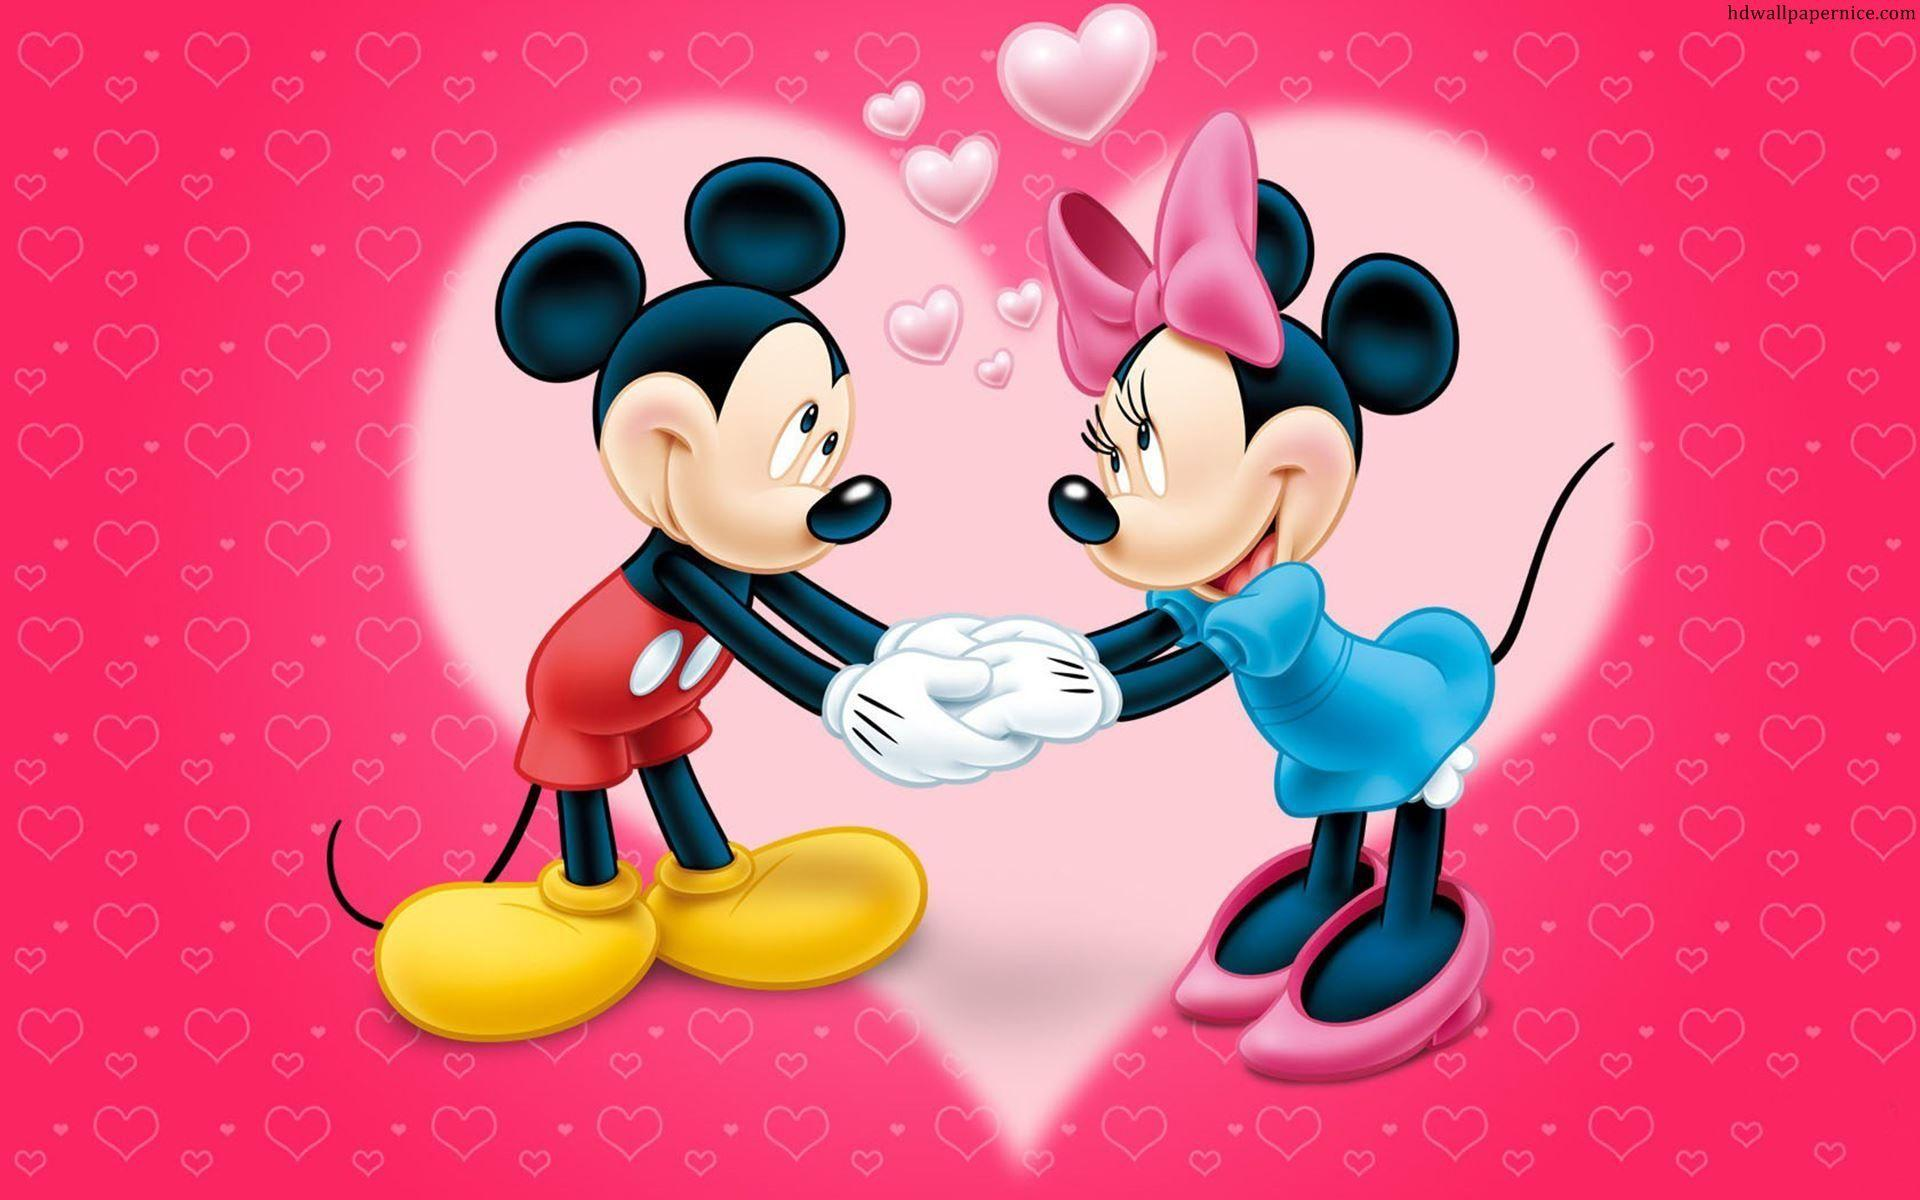 Cartoon Love Hd Wallpapers Wallpaper Cave